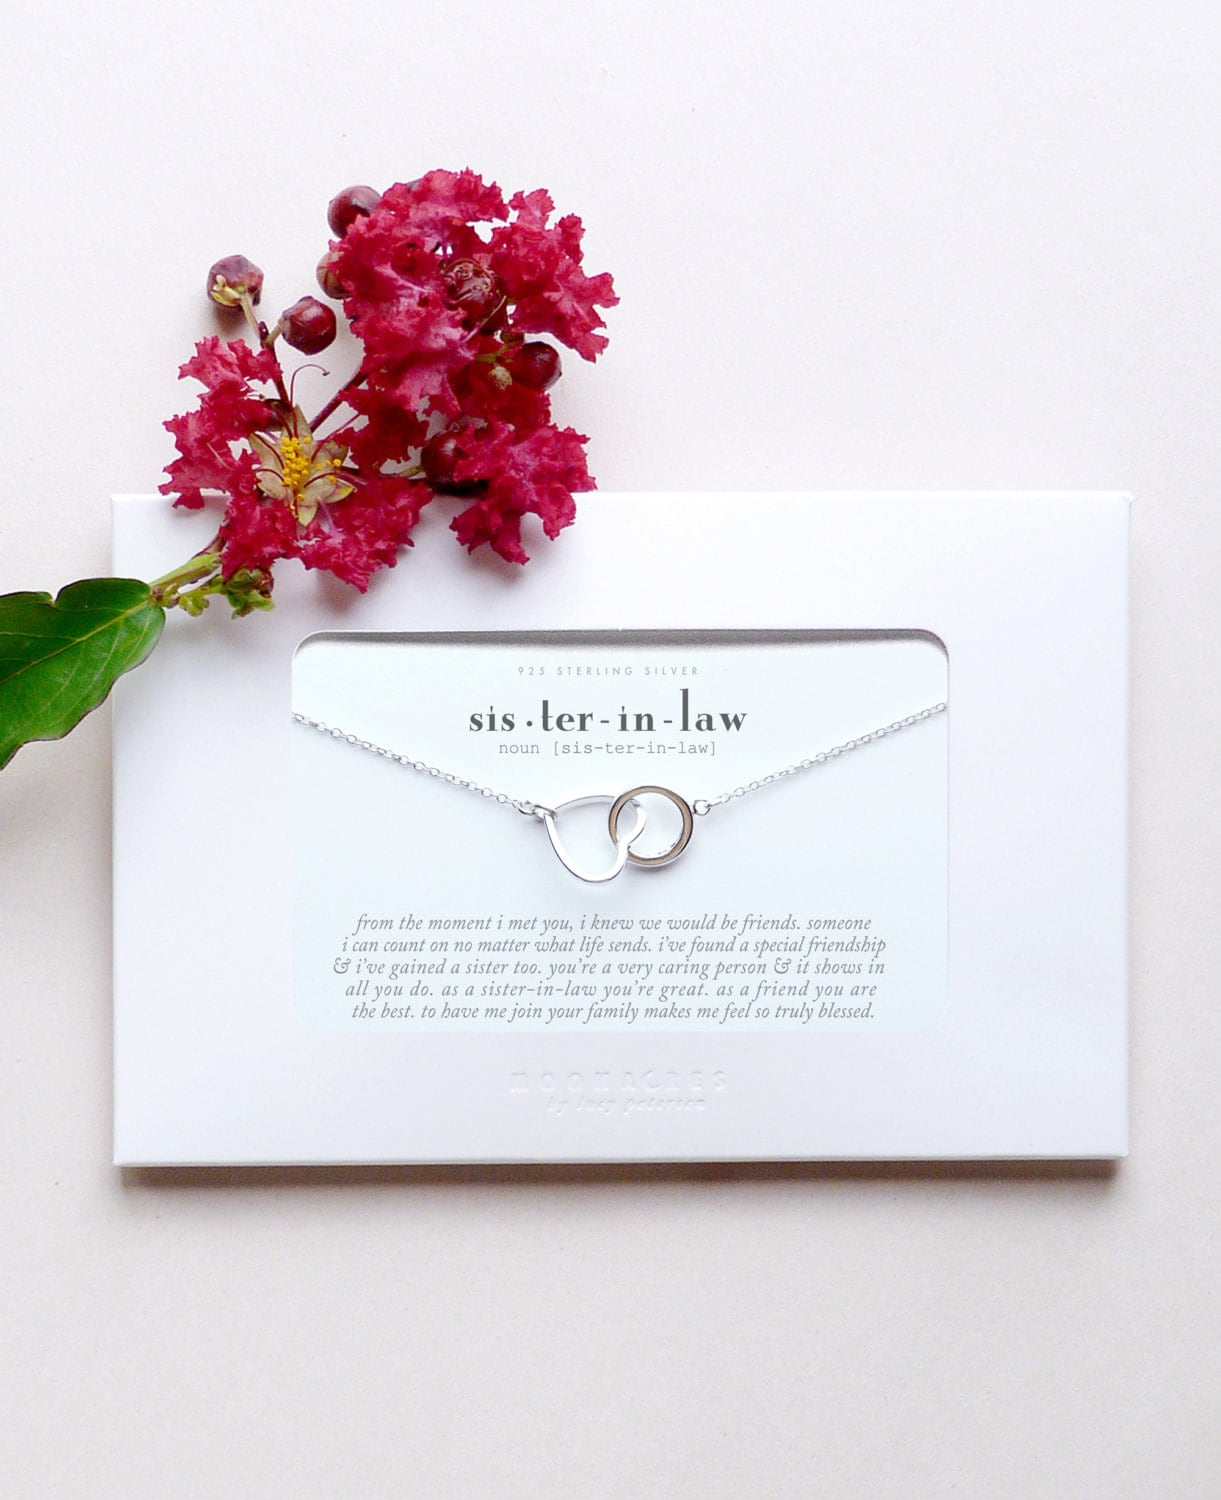 Wedding invitation rhymes for gifts picture ideas references wedding invitation rhymes for gifts wedding invitation poem for gifts picture ideas references negle Images